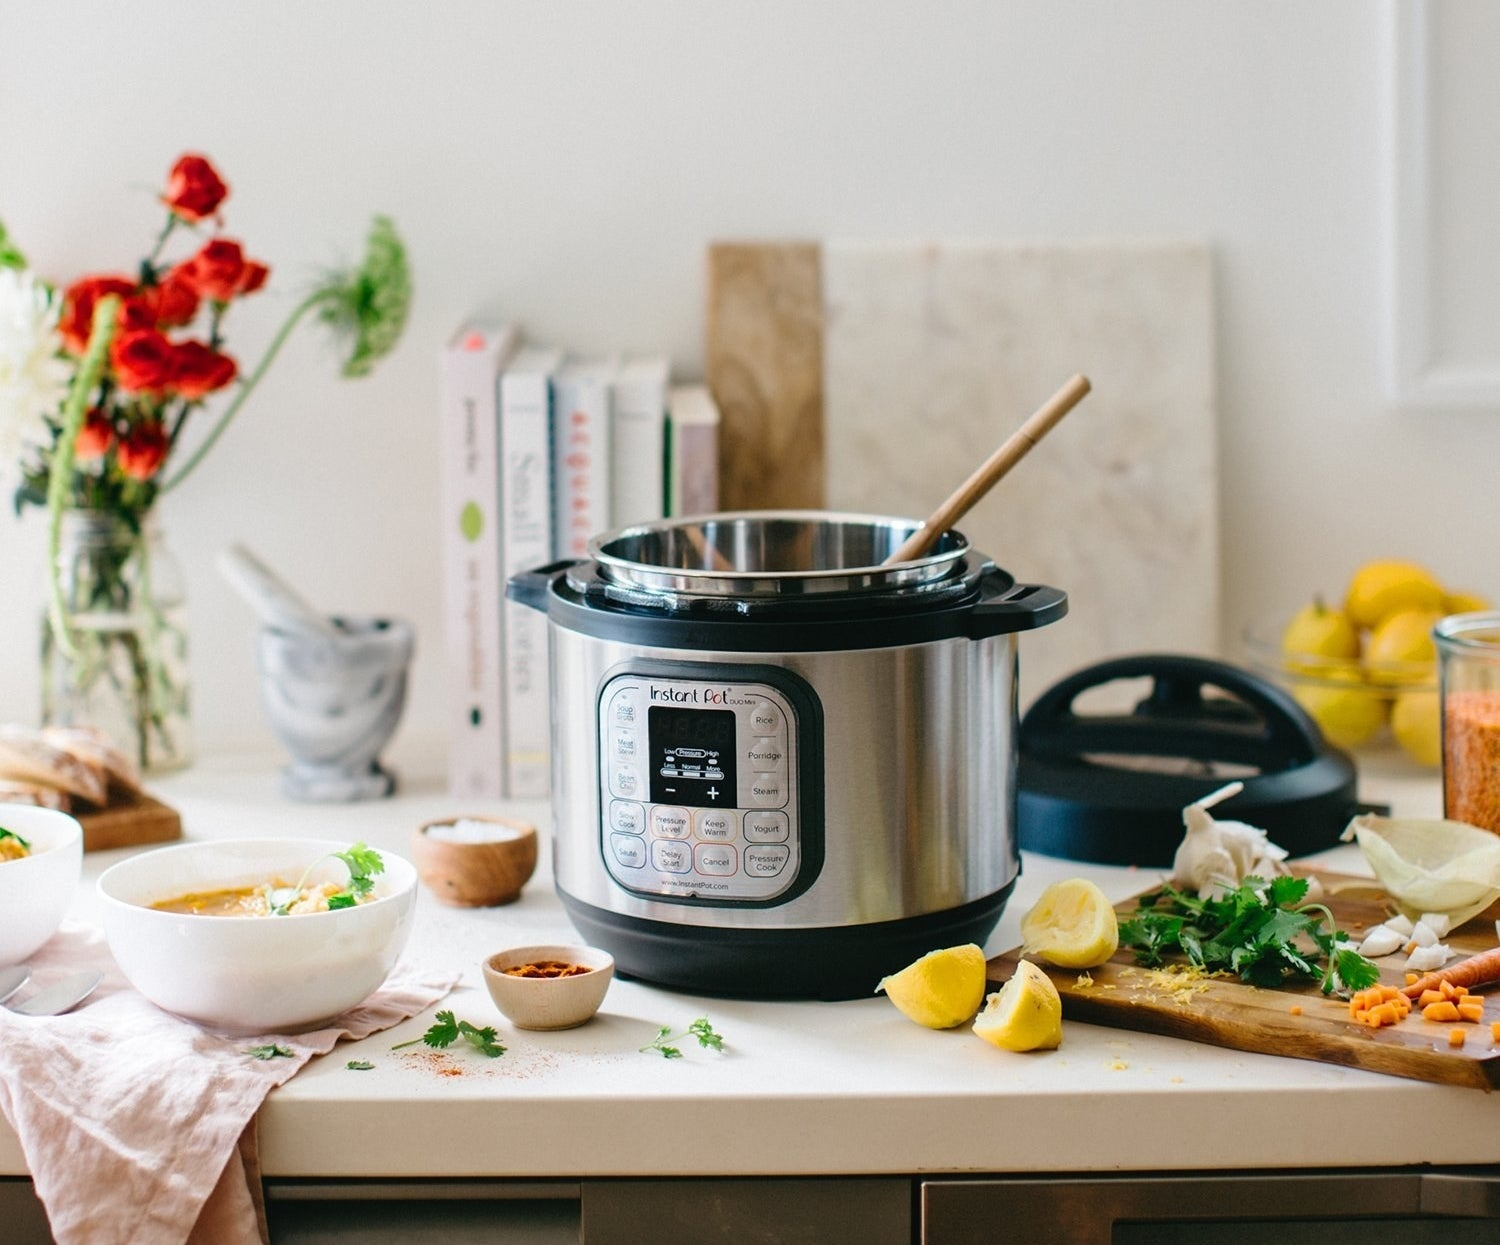 """It's a pressure cooker, slow cooker, rice cooker, steamer, sauté pan, yogurt maker, and food warmer all rolled into one nifty appliance. Check out a BuzzFeeder's review of the Instant Pot!Promising review: """"I have owned my Duo for over a year now, and I have used it at least five times each week. For cooking pasta, it's a 'set it and forget it' appliance. Dump in pasta, sauce, meatballs, and water. Set the time and go off to fold laundry, pack lunches, or whatever else needs to get done before bed. No more standing over the stove or stirring. Roasts come out great, with potatoes soaking in all the amazing juices at the same time. Cheesecakes are easier than ever. The best part is that there's no cleanup and no hot kitchen, like cooking with an oven. The stainless steel liner just goes straight into the dishwasher, saving busy families even more precious time. I have since added another Instant Pot to my collection and purchased five as gifts for family and friends."""" —Elissa SpicerGet it from Amazon for $59.95+ (available in three sizes)."""